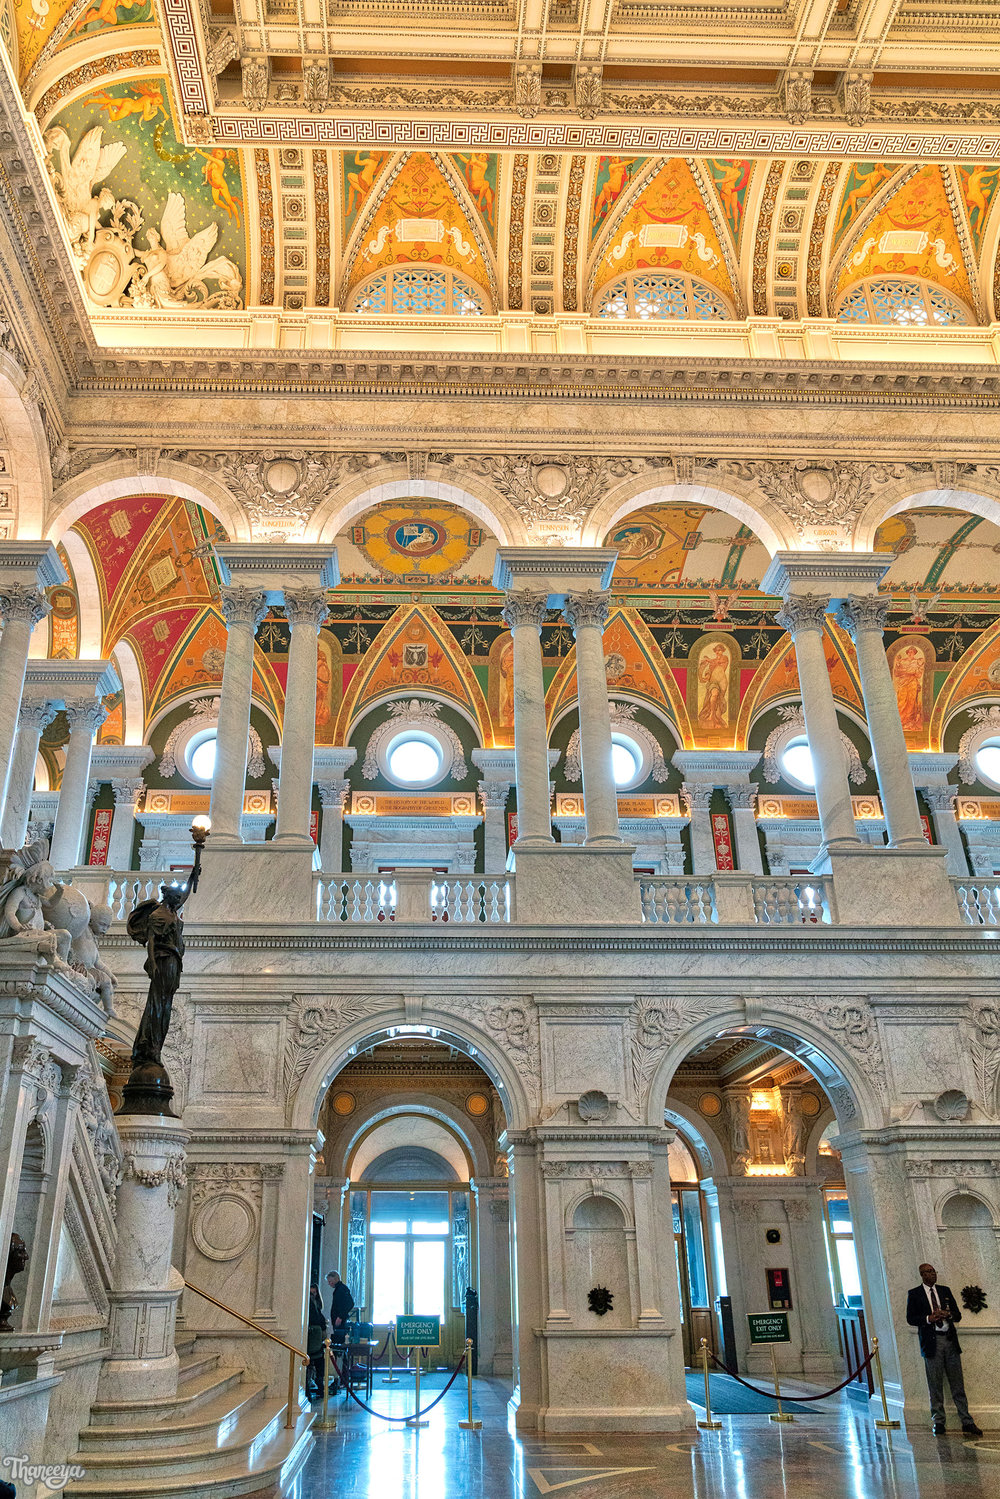 Jefferson Building, Library of Congress, Washington, DC.